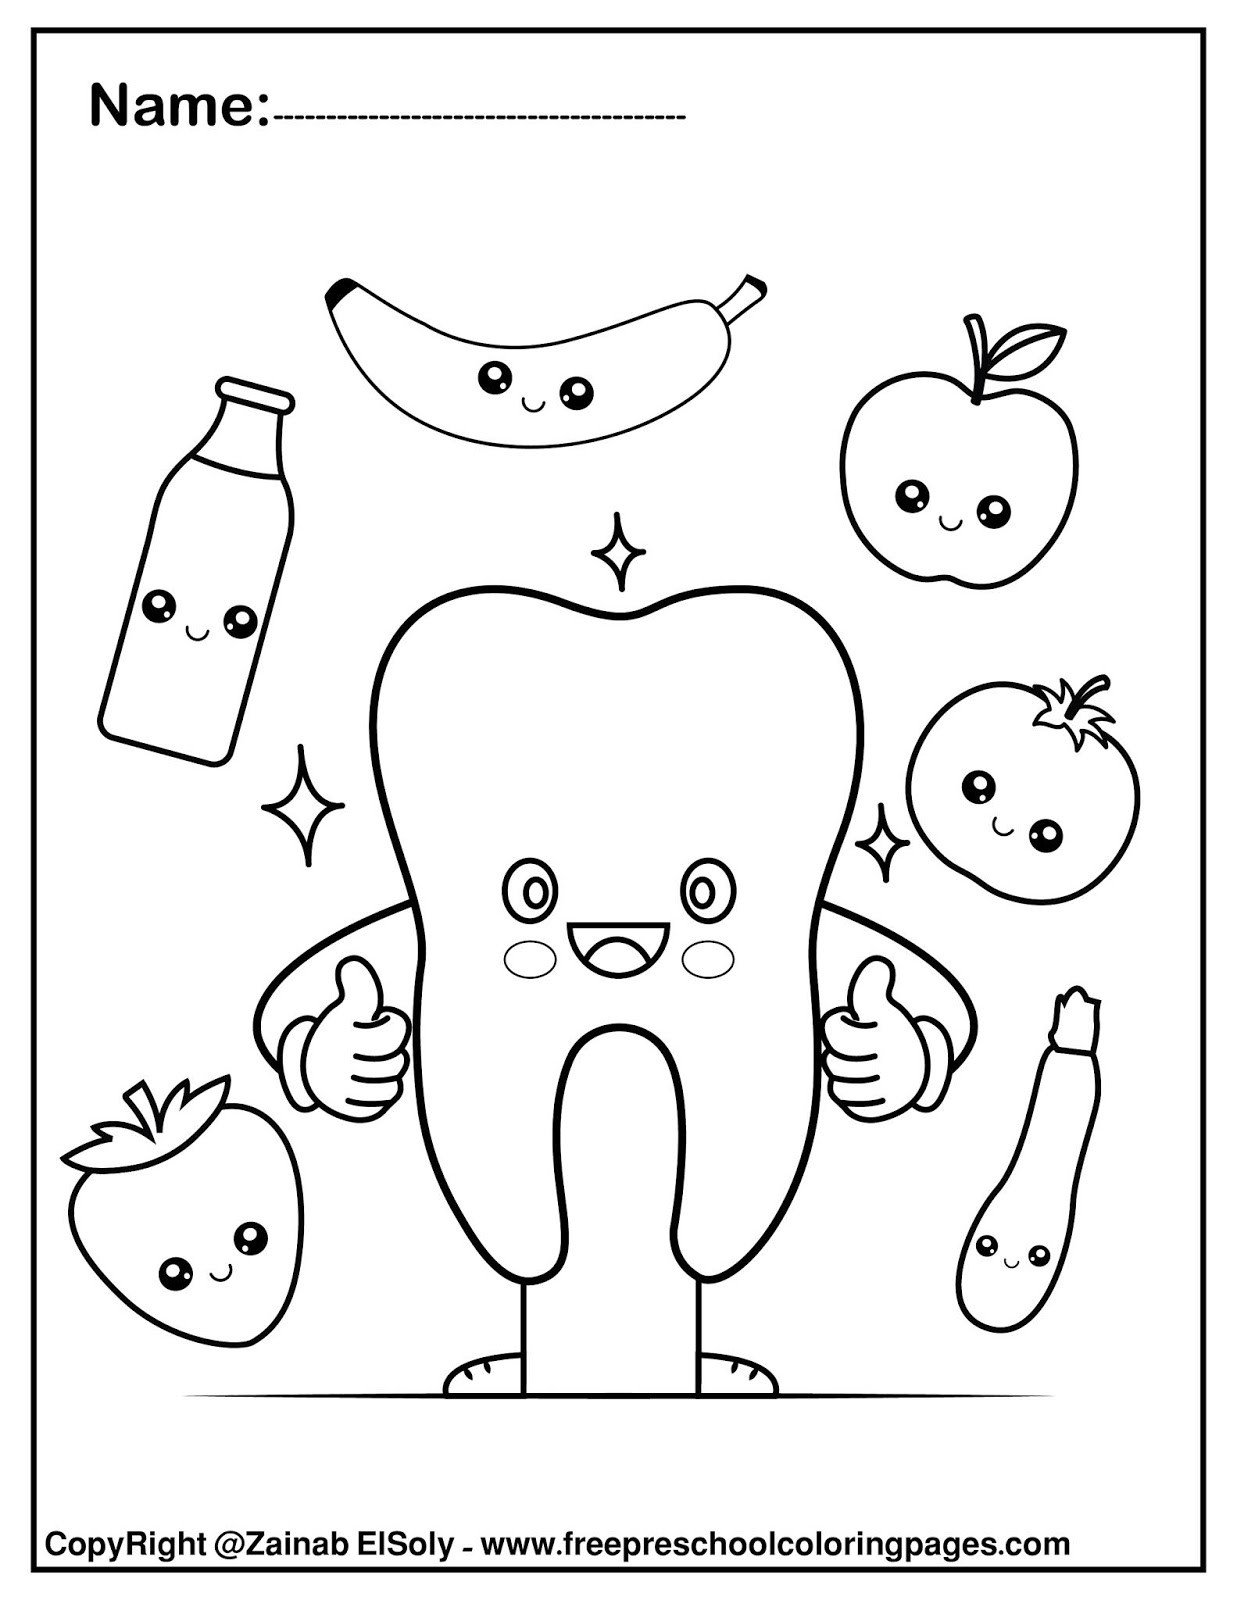 Dentist Worksheets for Kindergarten Set Free Dental Care Coloring for Kids Hygiene Worksheets